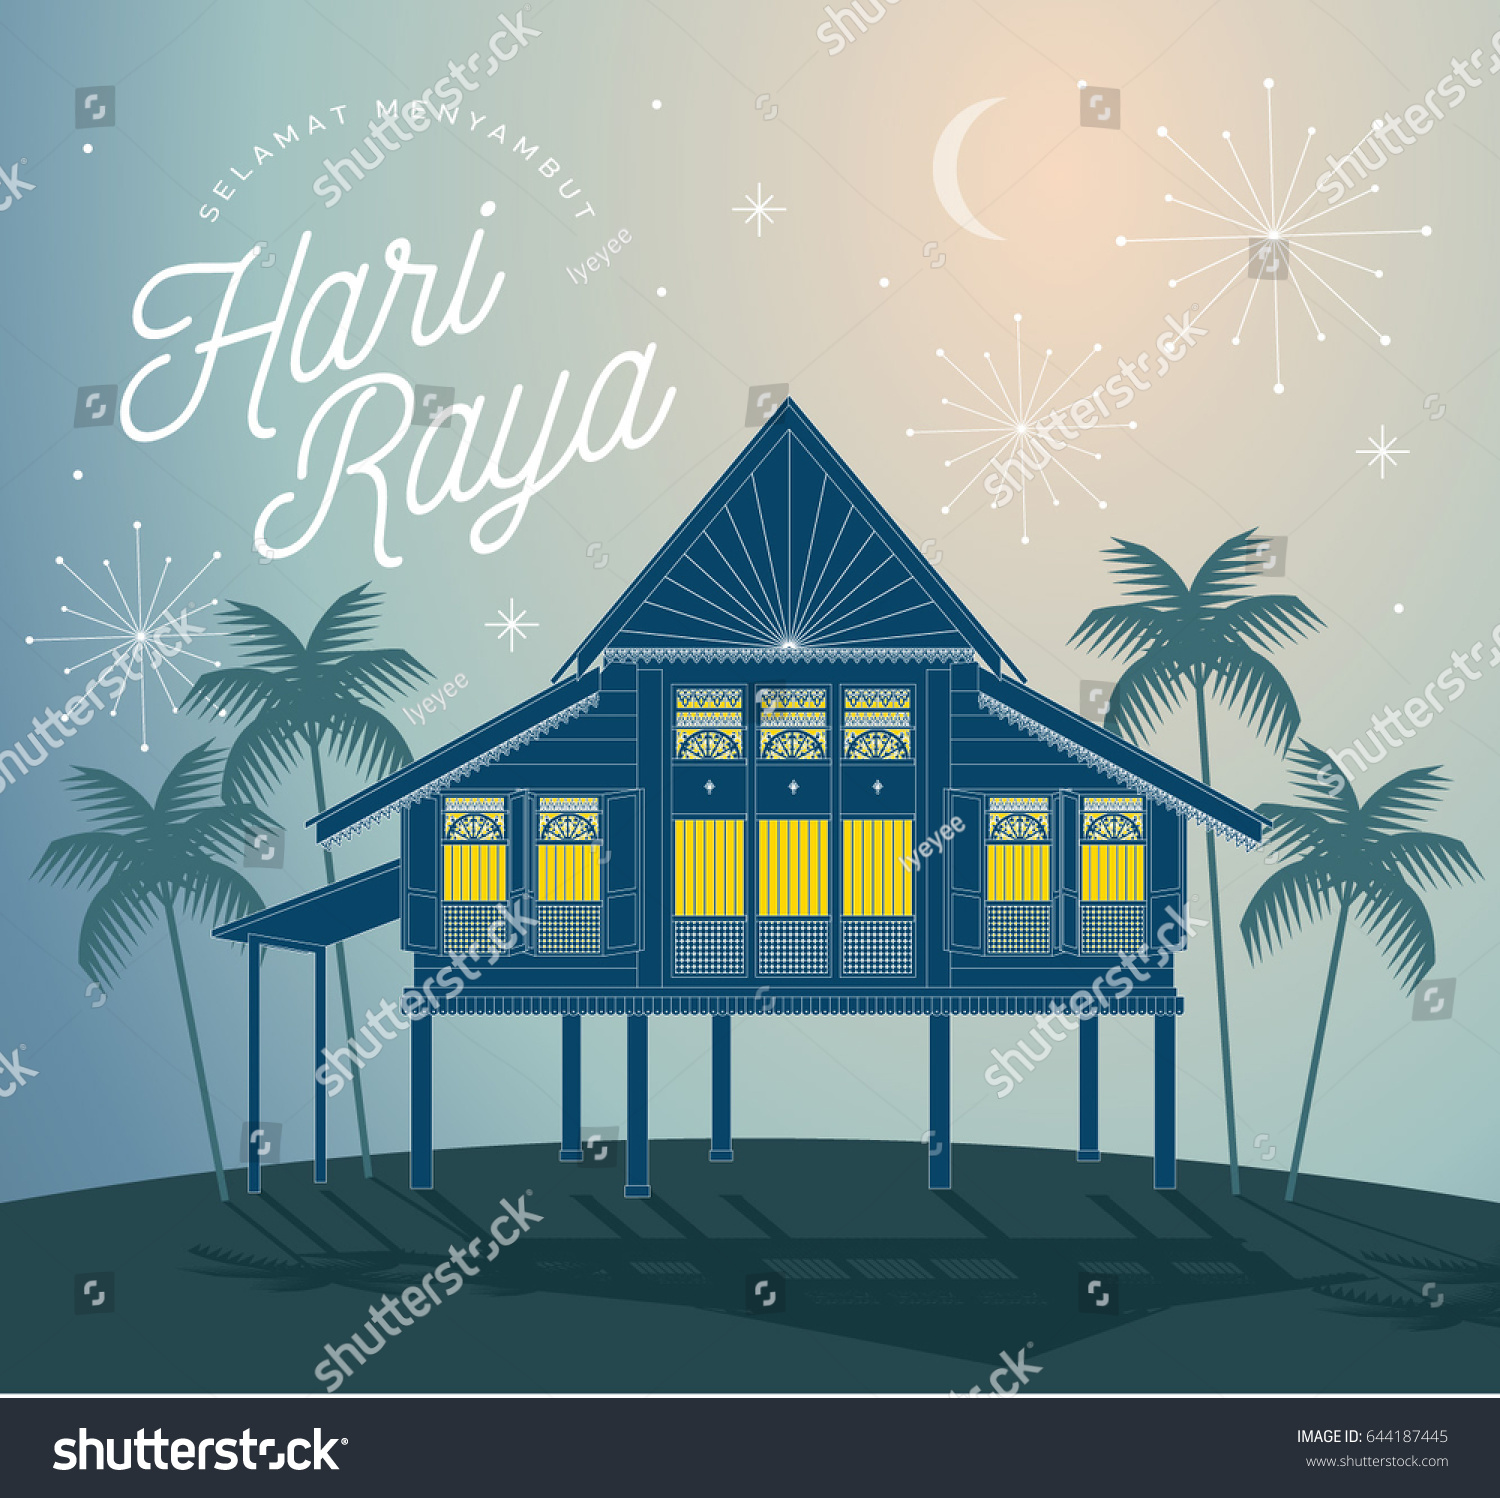 Raya greetings village scene template vectorillustration stock raya greetings village scene template vectorillustration with malay words that mean happy eid m4hsunfo